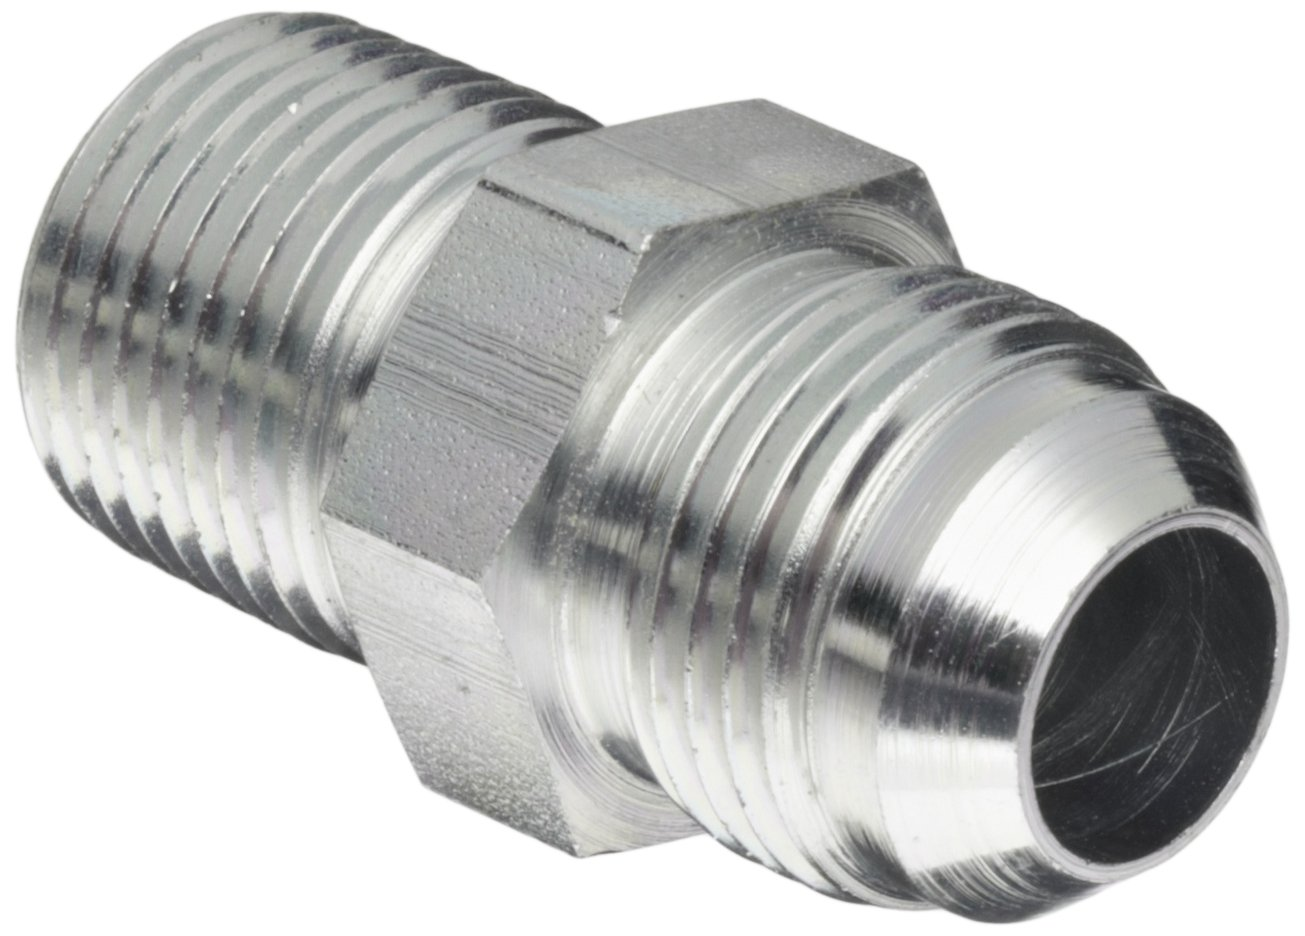 Eaton Aeroquip 2021-8-10S Male Connector, Male 37 Degree JIC, Male Pipe Thread, JIC 37 Degree & NPT End Types, Carbon Steel, 1/2 NPT(m) x 5/8 JIC(m) End Size, 5/8'' Tube OD (Pack of 4)